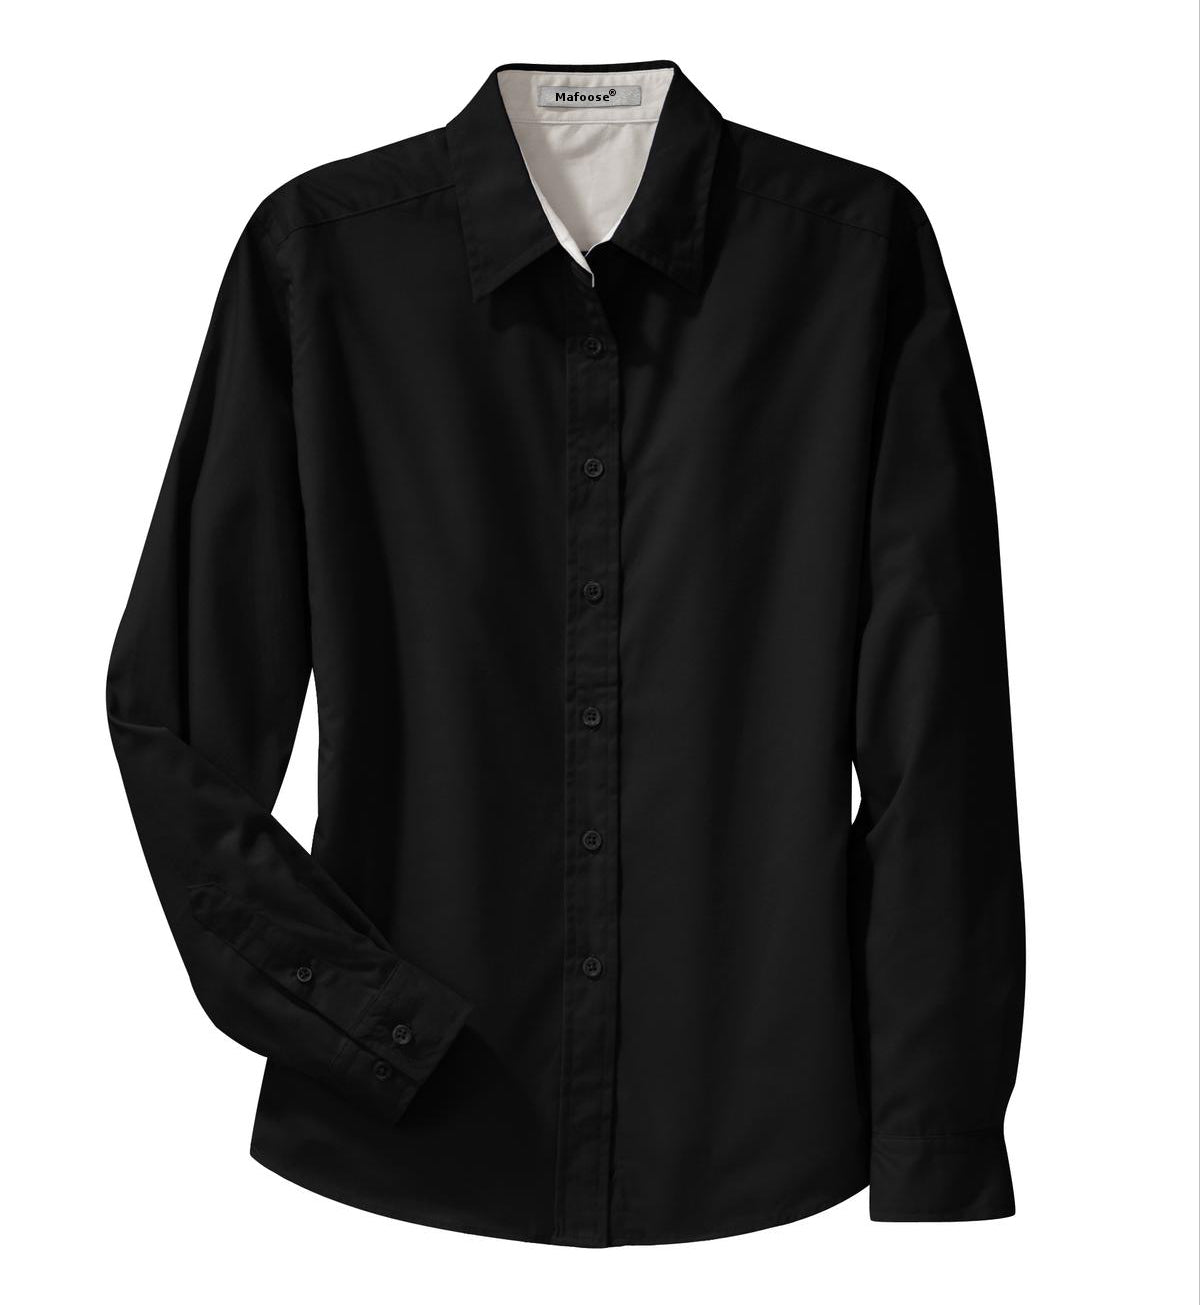 Mafoose Women's Long Sleeve Easy Care Shirt Black/ Light Stone-Front